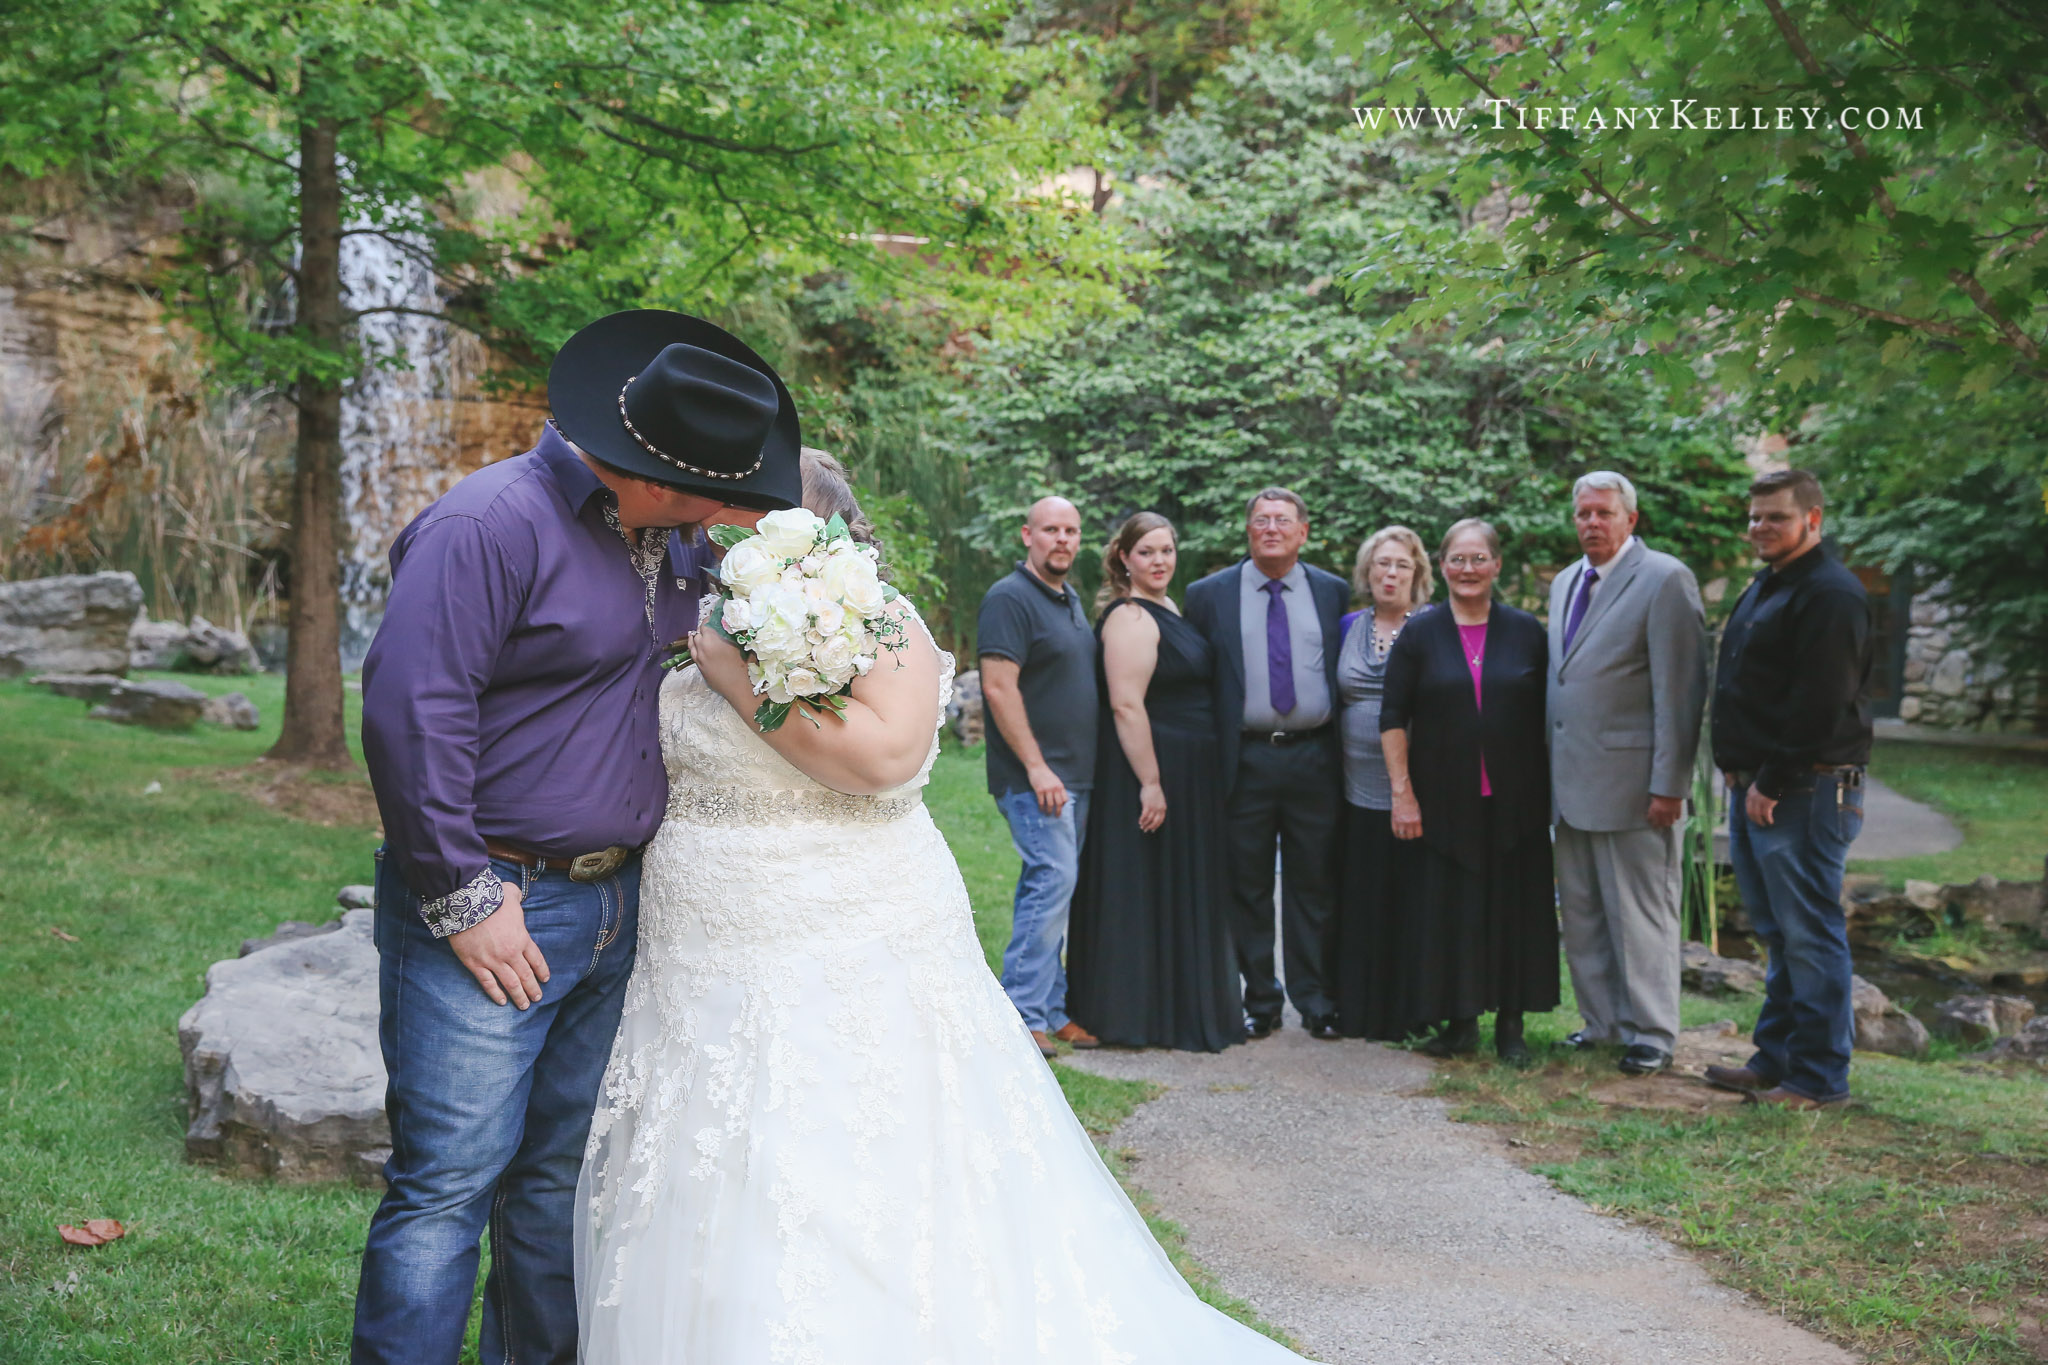 branson-missouri-big-cedar-lodge-wedding-photographer-tiffany-kelley-photography-12